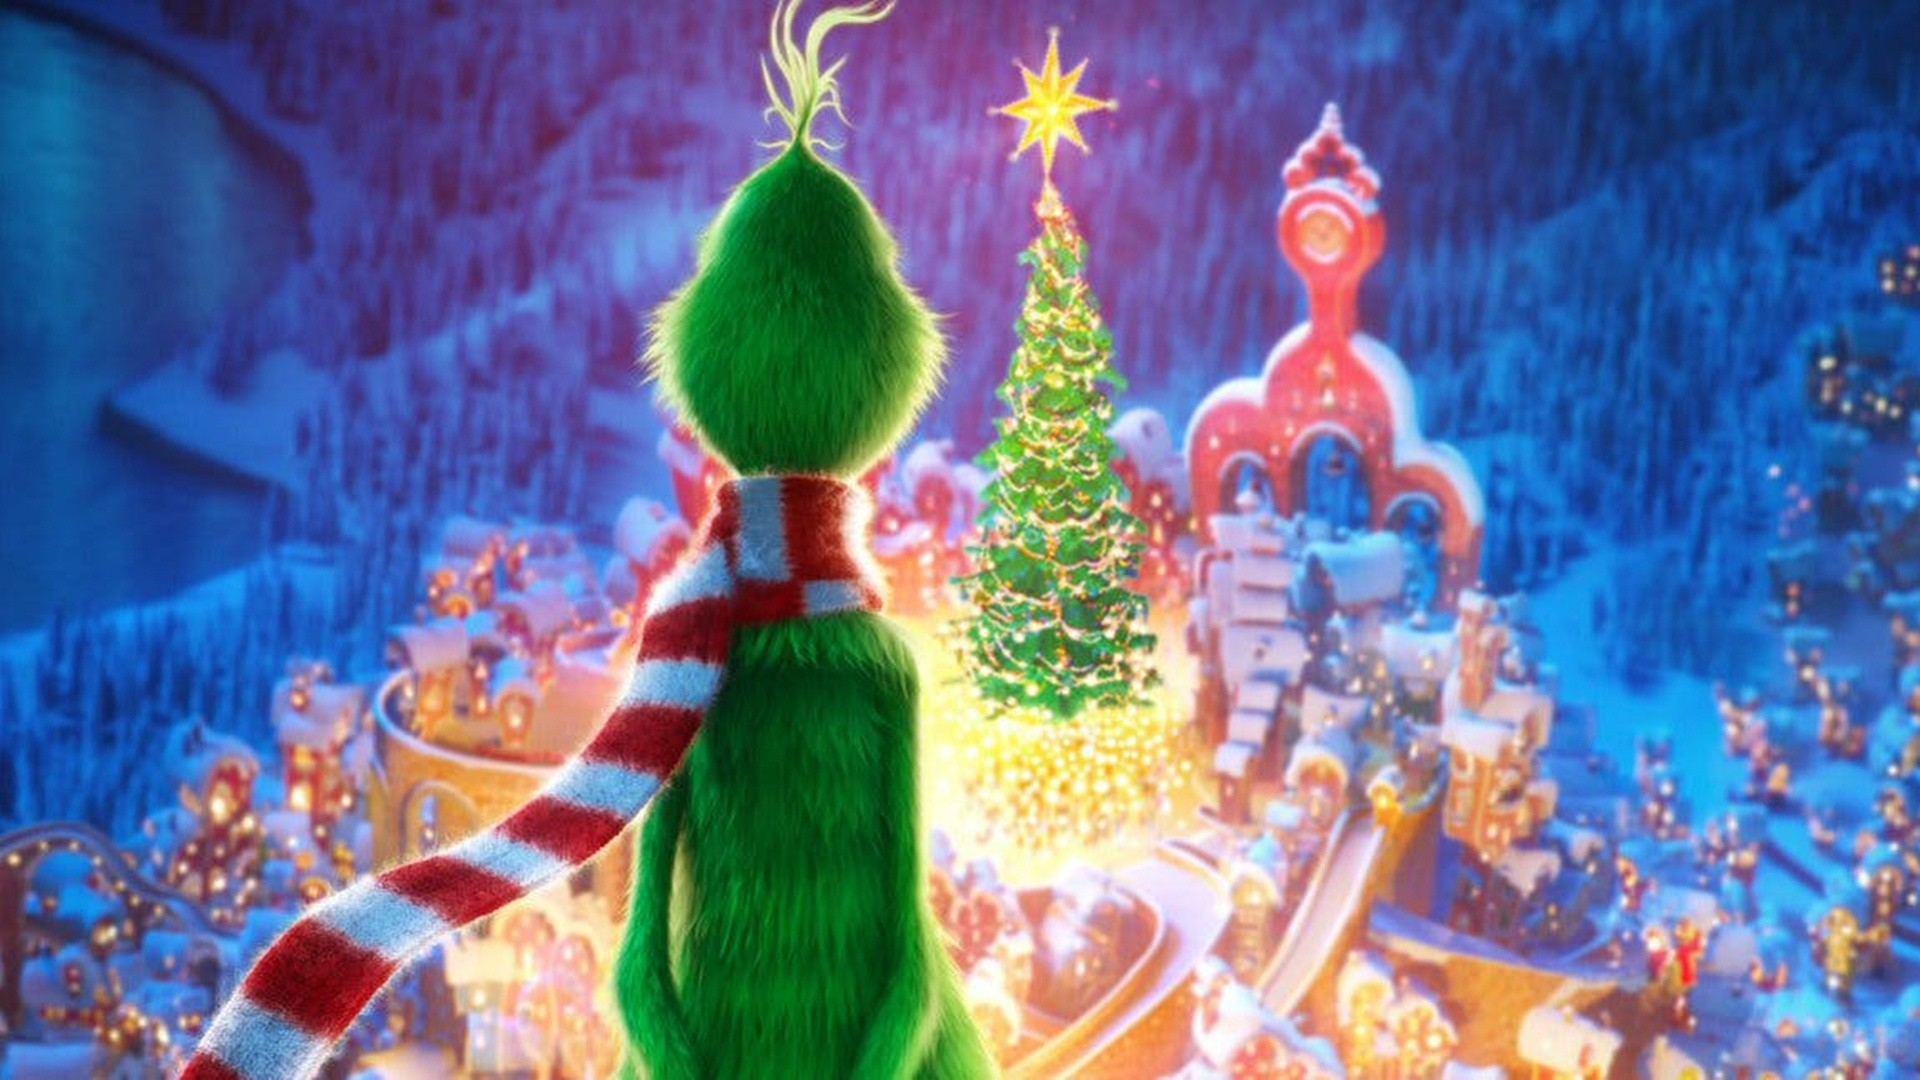 aesthetic wallpapers iphone grinch